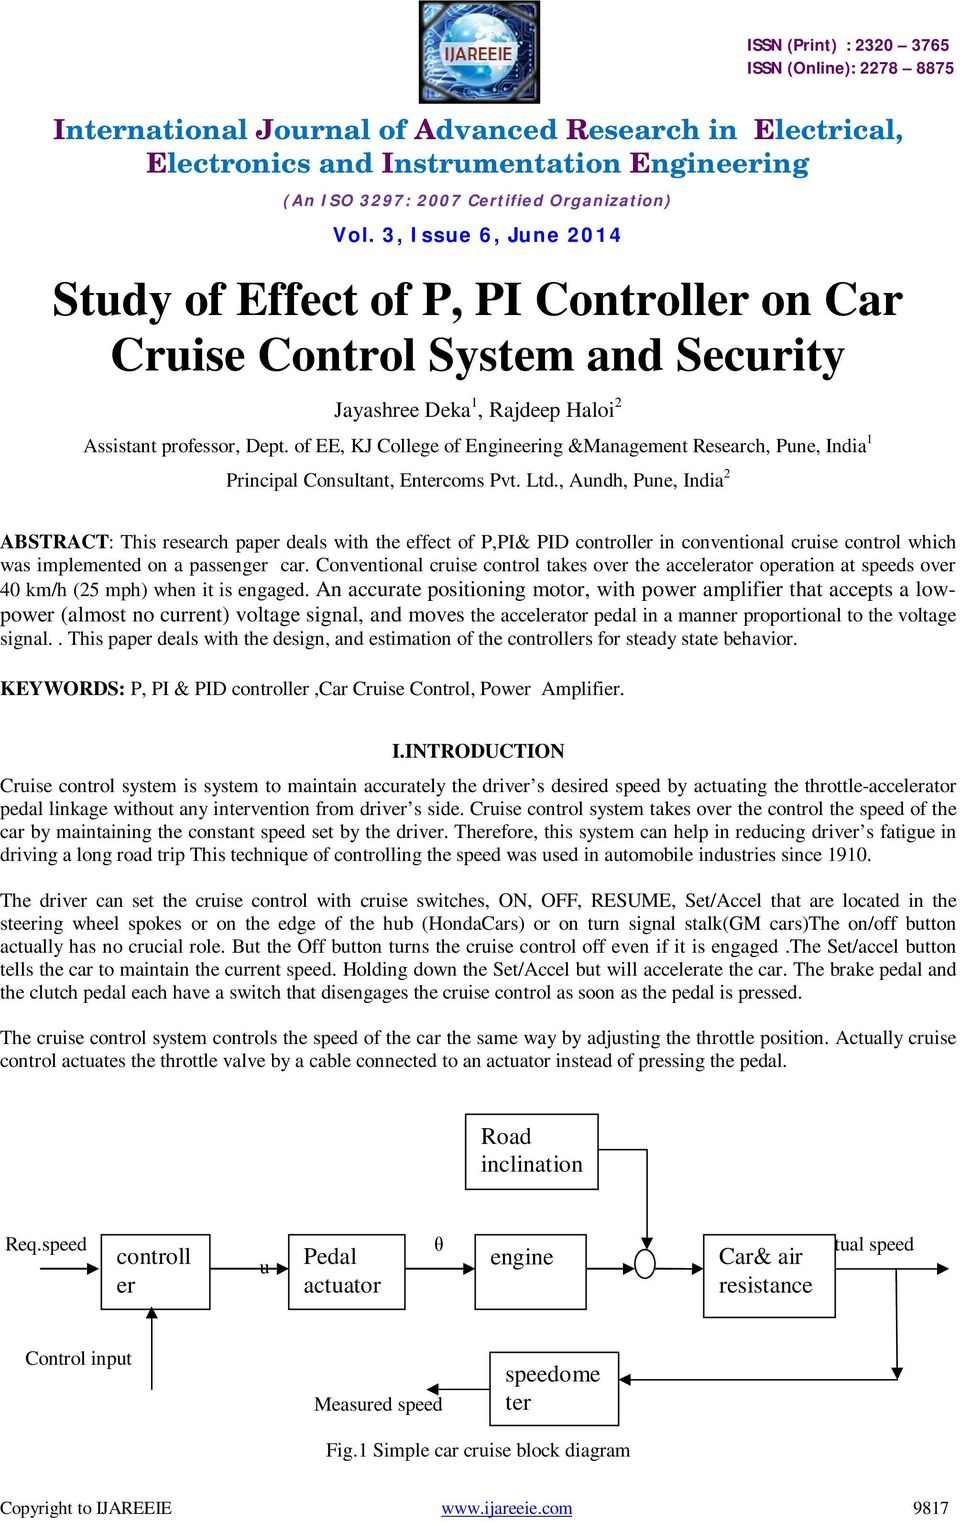 Study Of Effect P Pi Controller On Car Cruise Control System And Fiat Diagram Aundh Pune India 2 Abstract This Research Paper Deals With The